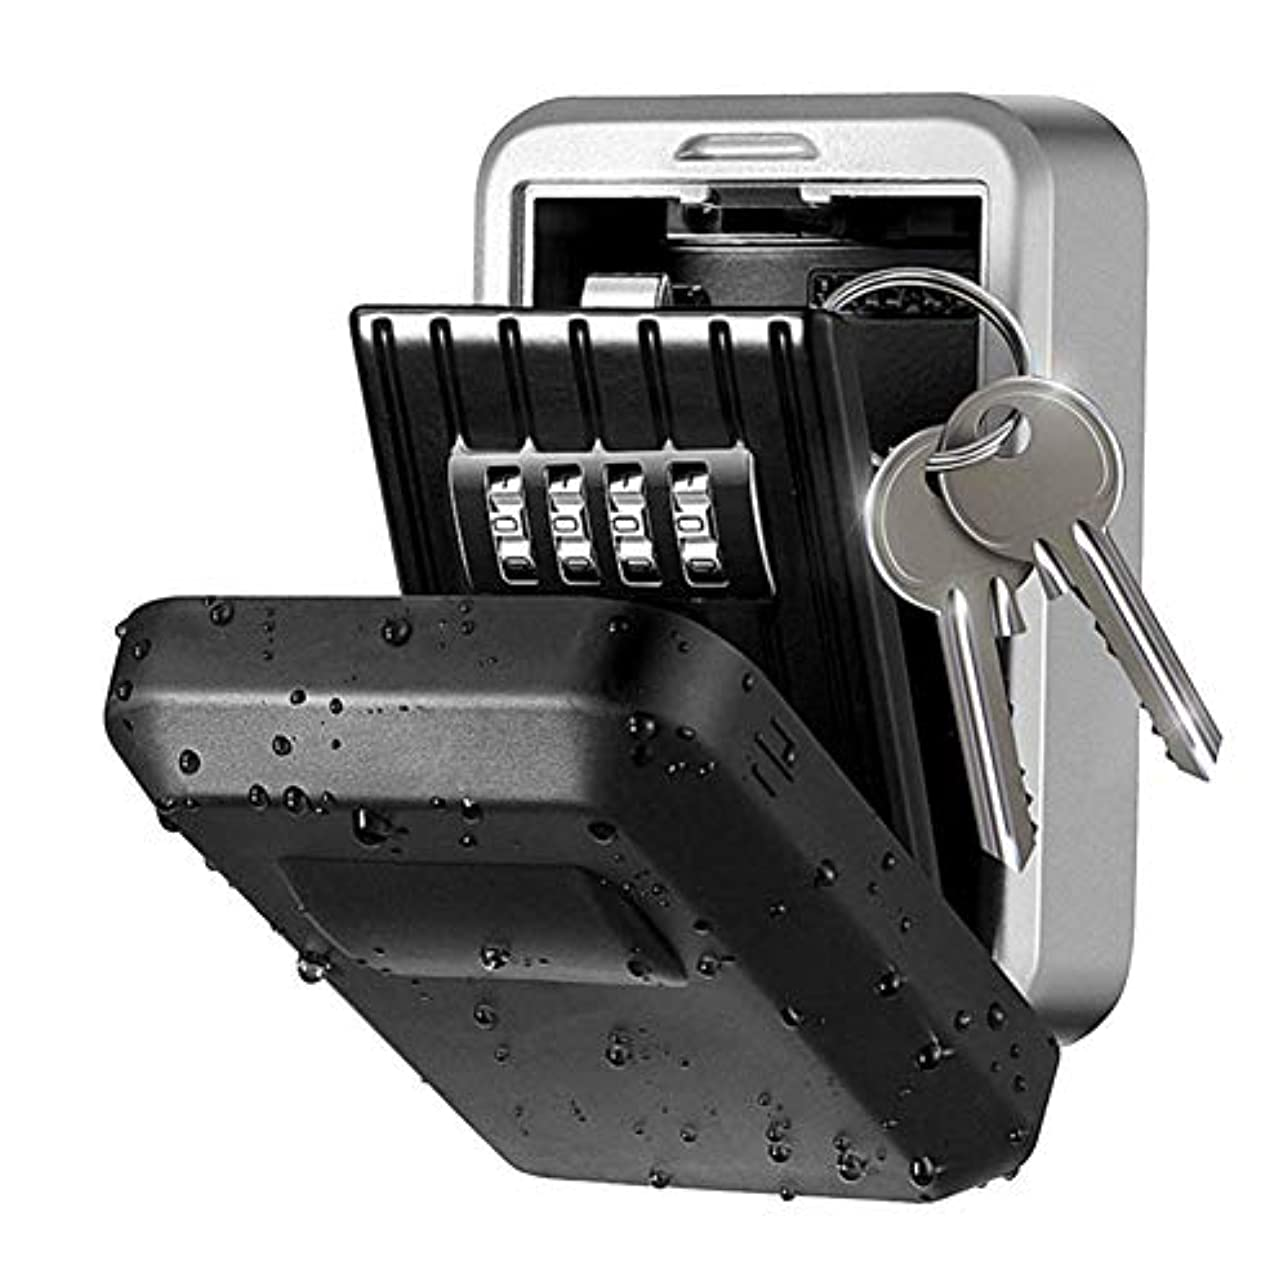 用心深いレシピ教義Key Storage Box,ZOZOE Wall Mount Key Lock Box - Strong, Metal, Outdoors 4 Digit Combination Wall Mount Key Safe...